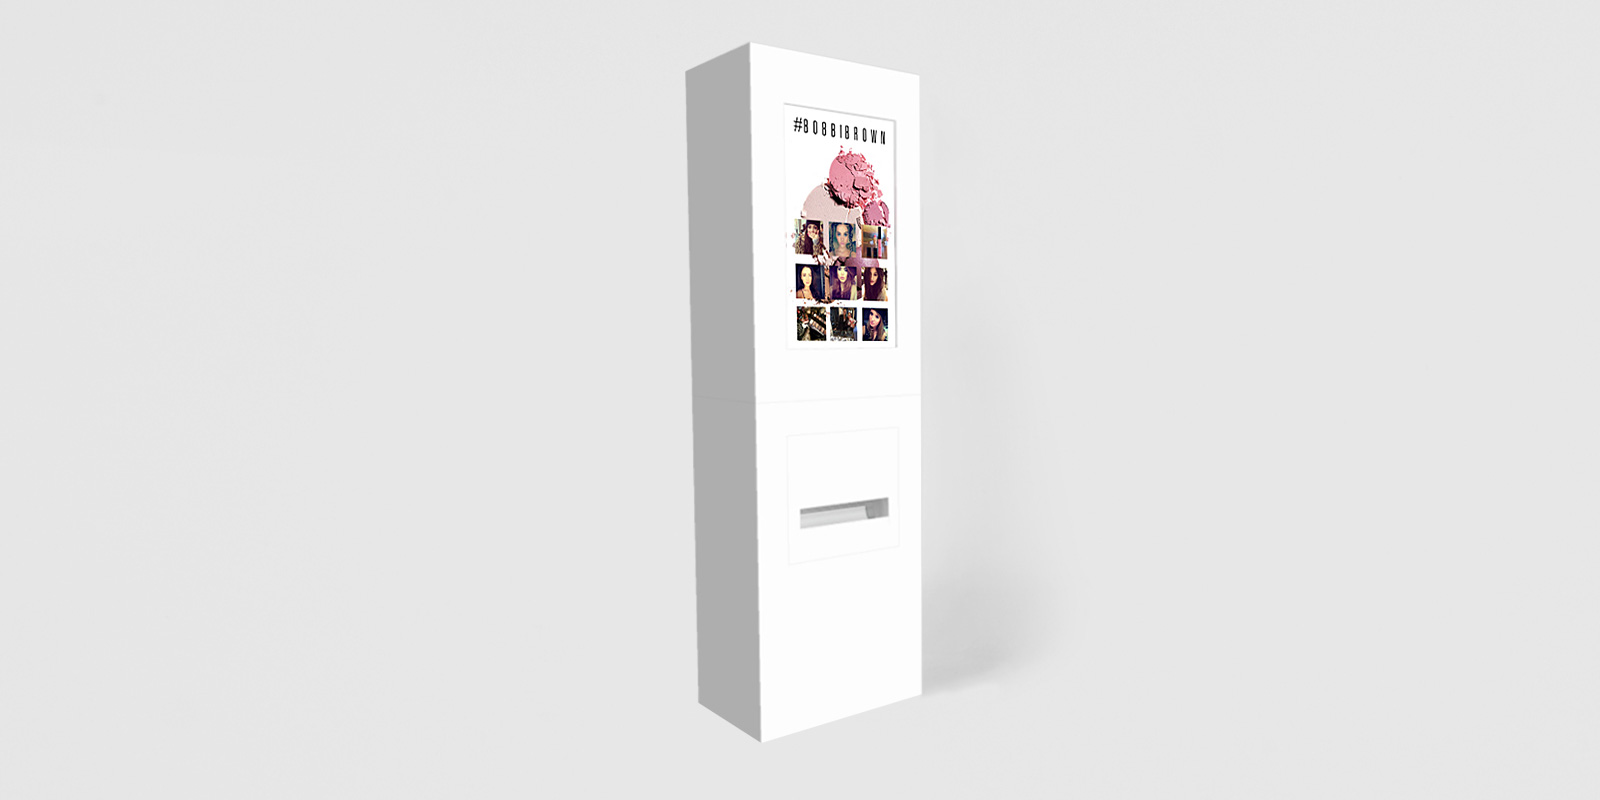 Hashtag Printer - Utilise the power of social media at your event - Click here for more!